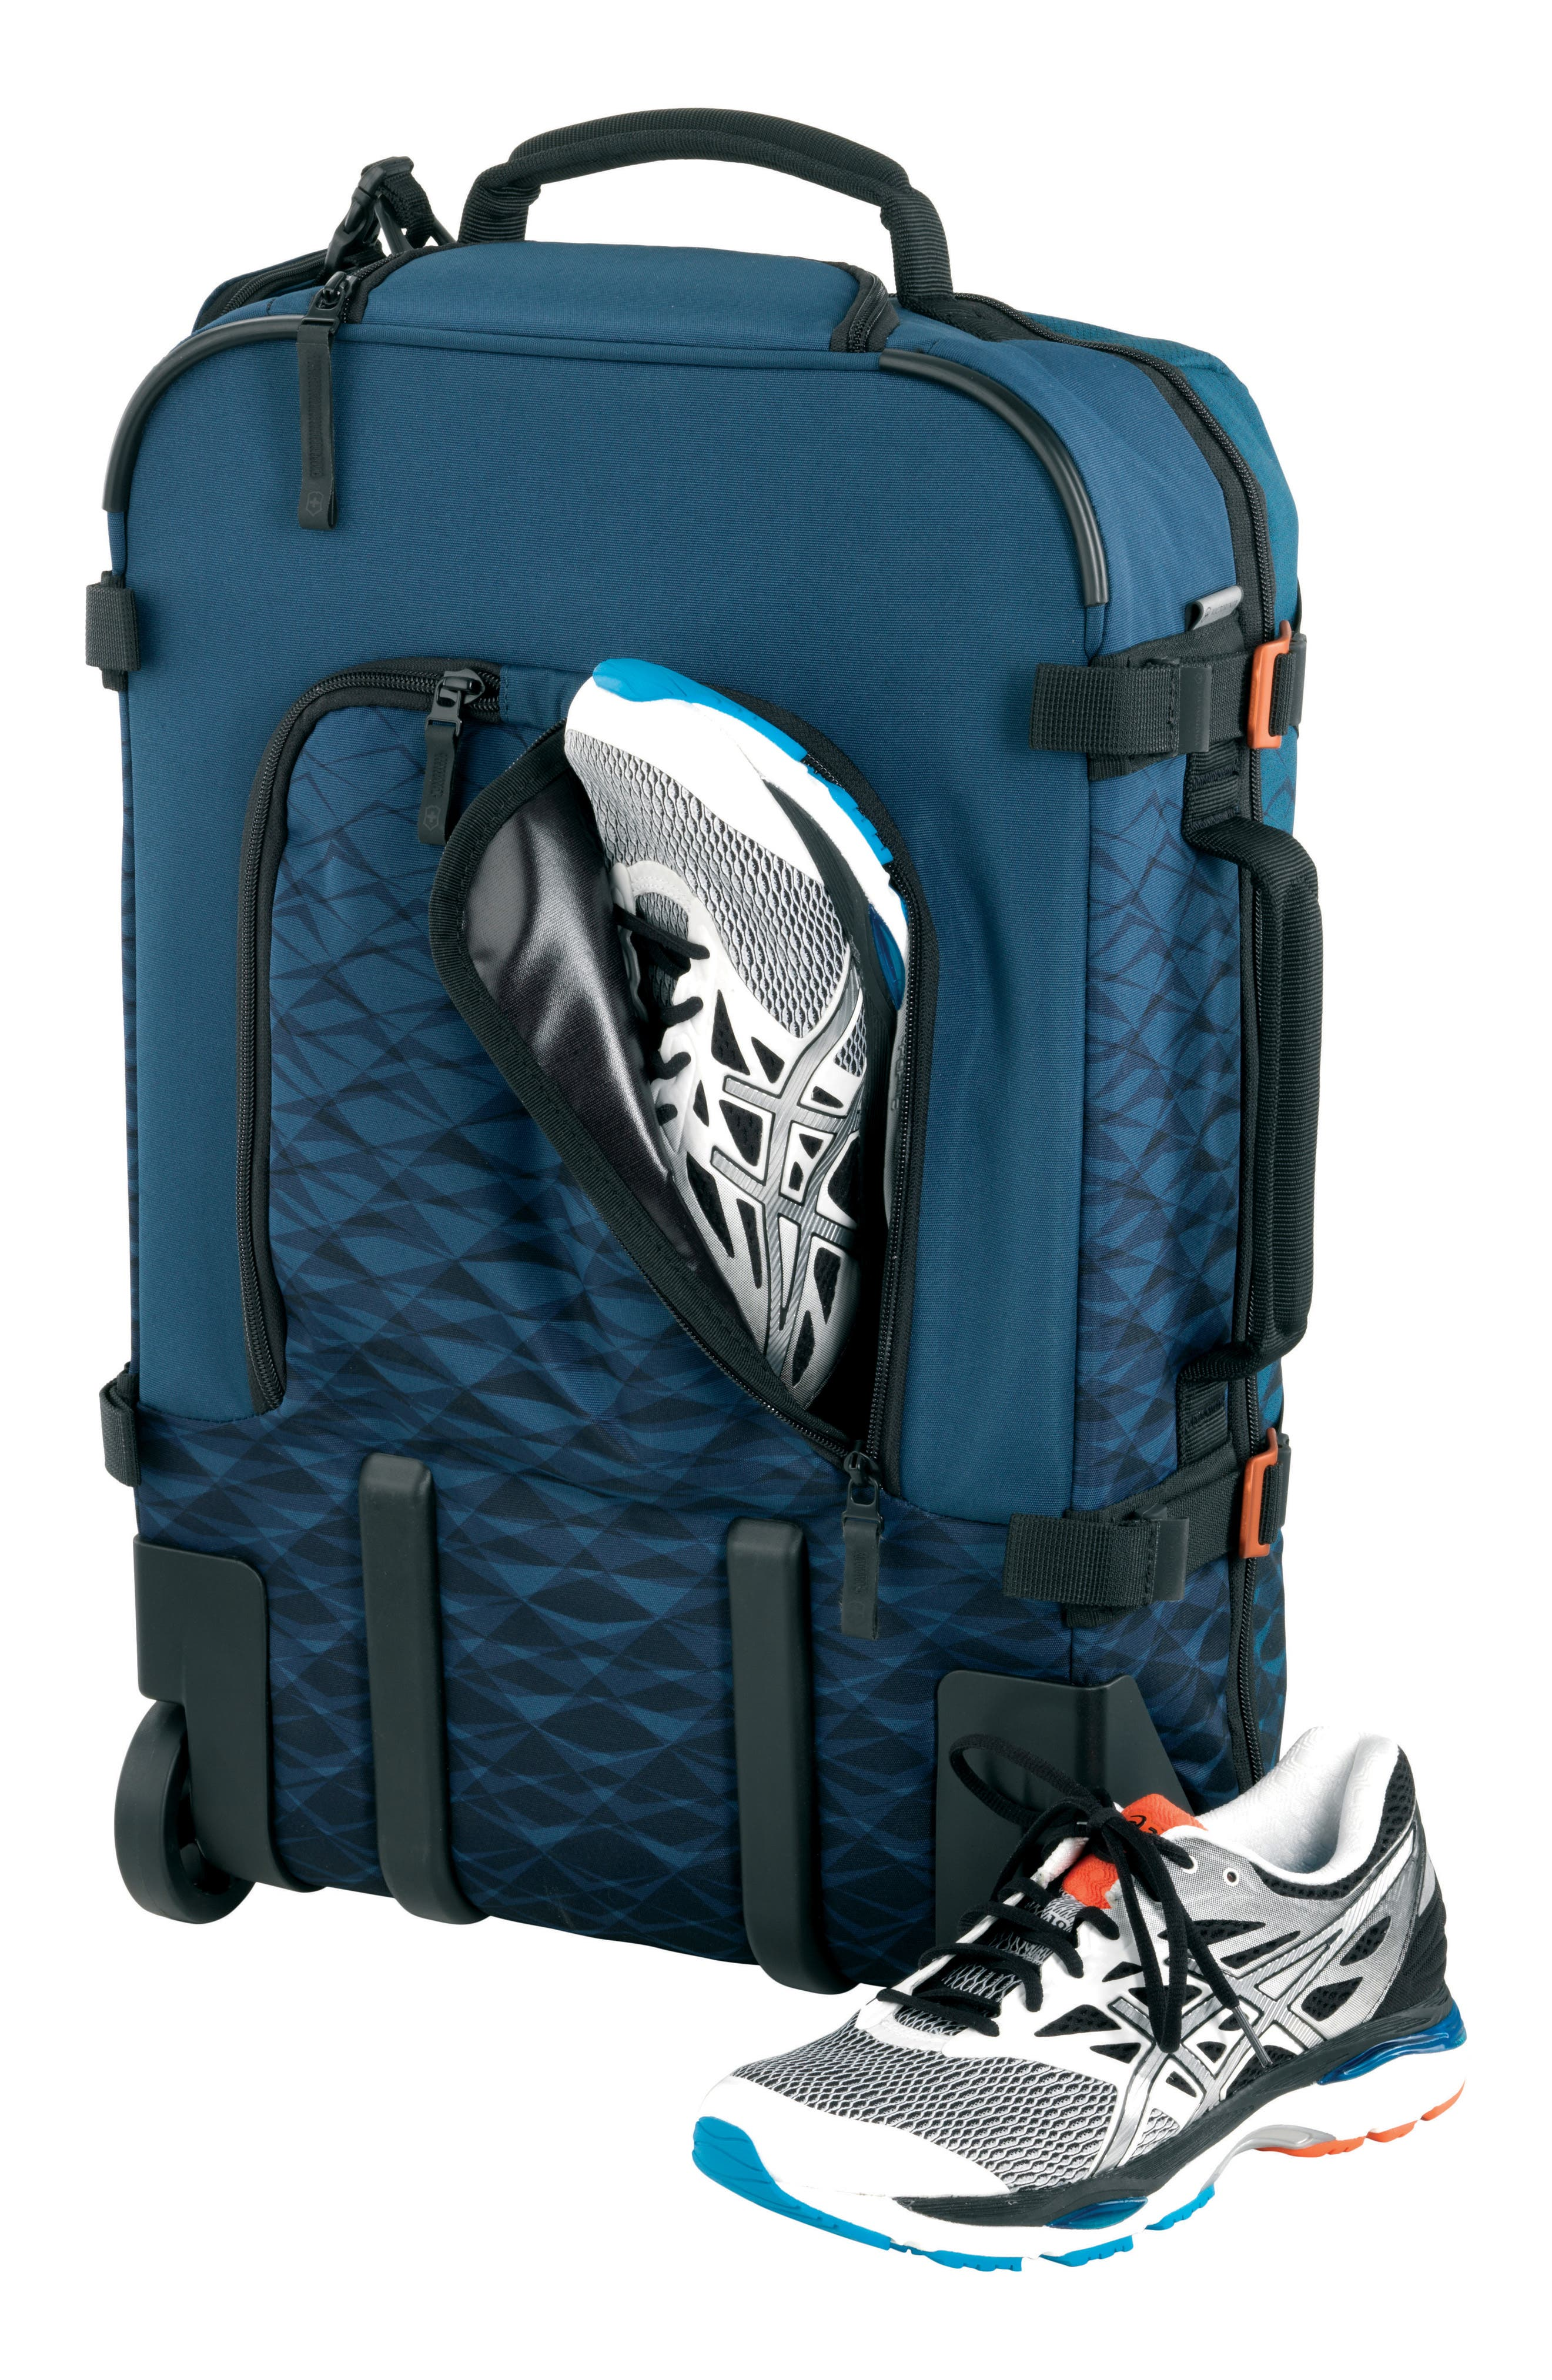 VX Touring 21-Inch Carry-On,                             Alternate thumbnail 2, color,                             Dark Teal